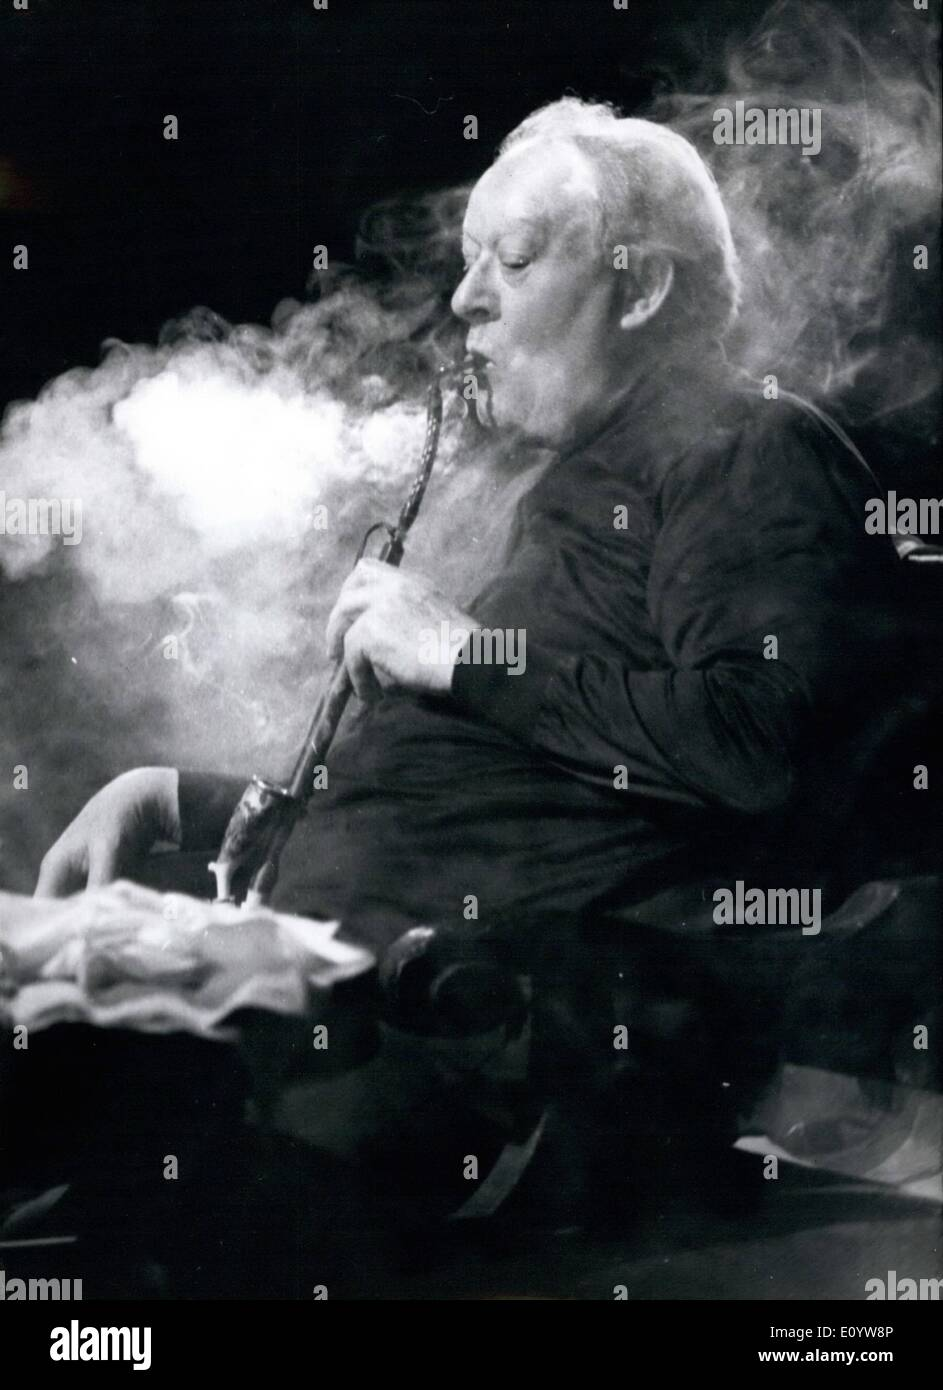 Jul. 07, 1971 - Munice-Opera-Festival 1971 - July 14th Till August 6th; For the opera-festival. in Munich (West-Germany) the actor Kurt Bohme had to learn enjoying a pipe - and he did! The opera from Richard Strauss, has been new produced bei Ghunter Ronnert; costumes and scenery is from Rudolf Heinrich; conductor of ''Die'' schweigsame Frau'' (the quiet women) is Wolfgang Sawallison. - Stock Image